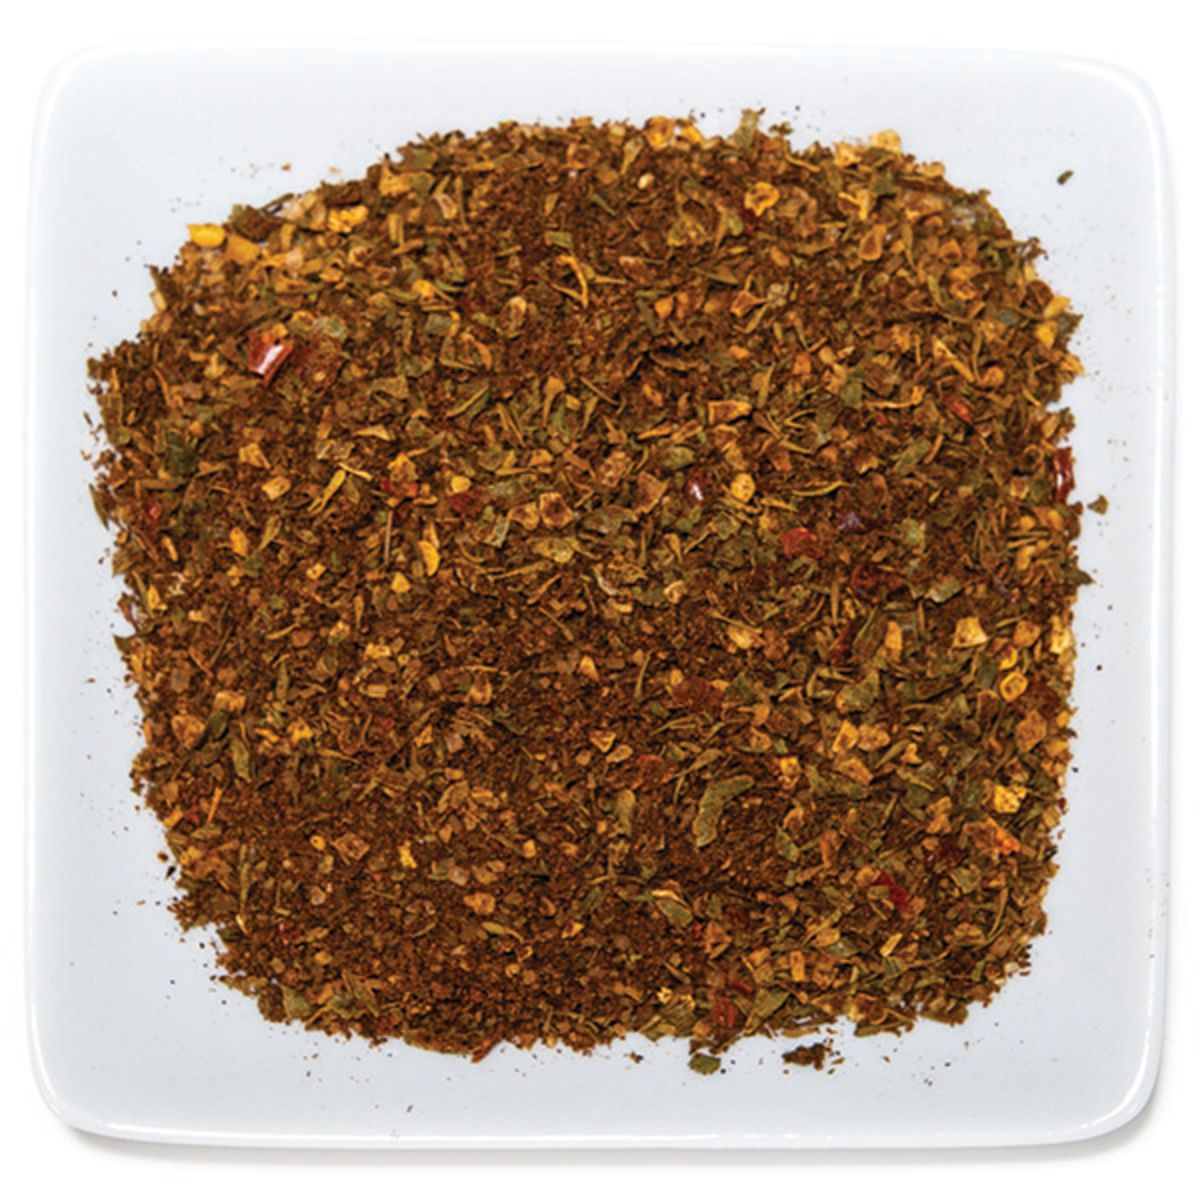 Cinnamon Chili Rub Spice, 4 ozs by weight [3/4 cup by volume]